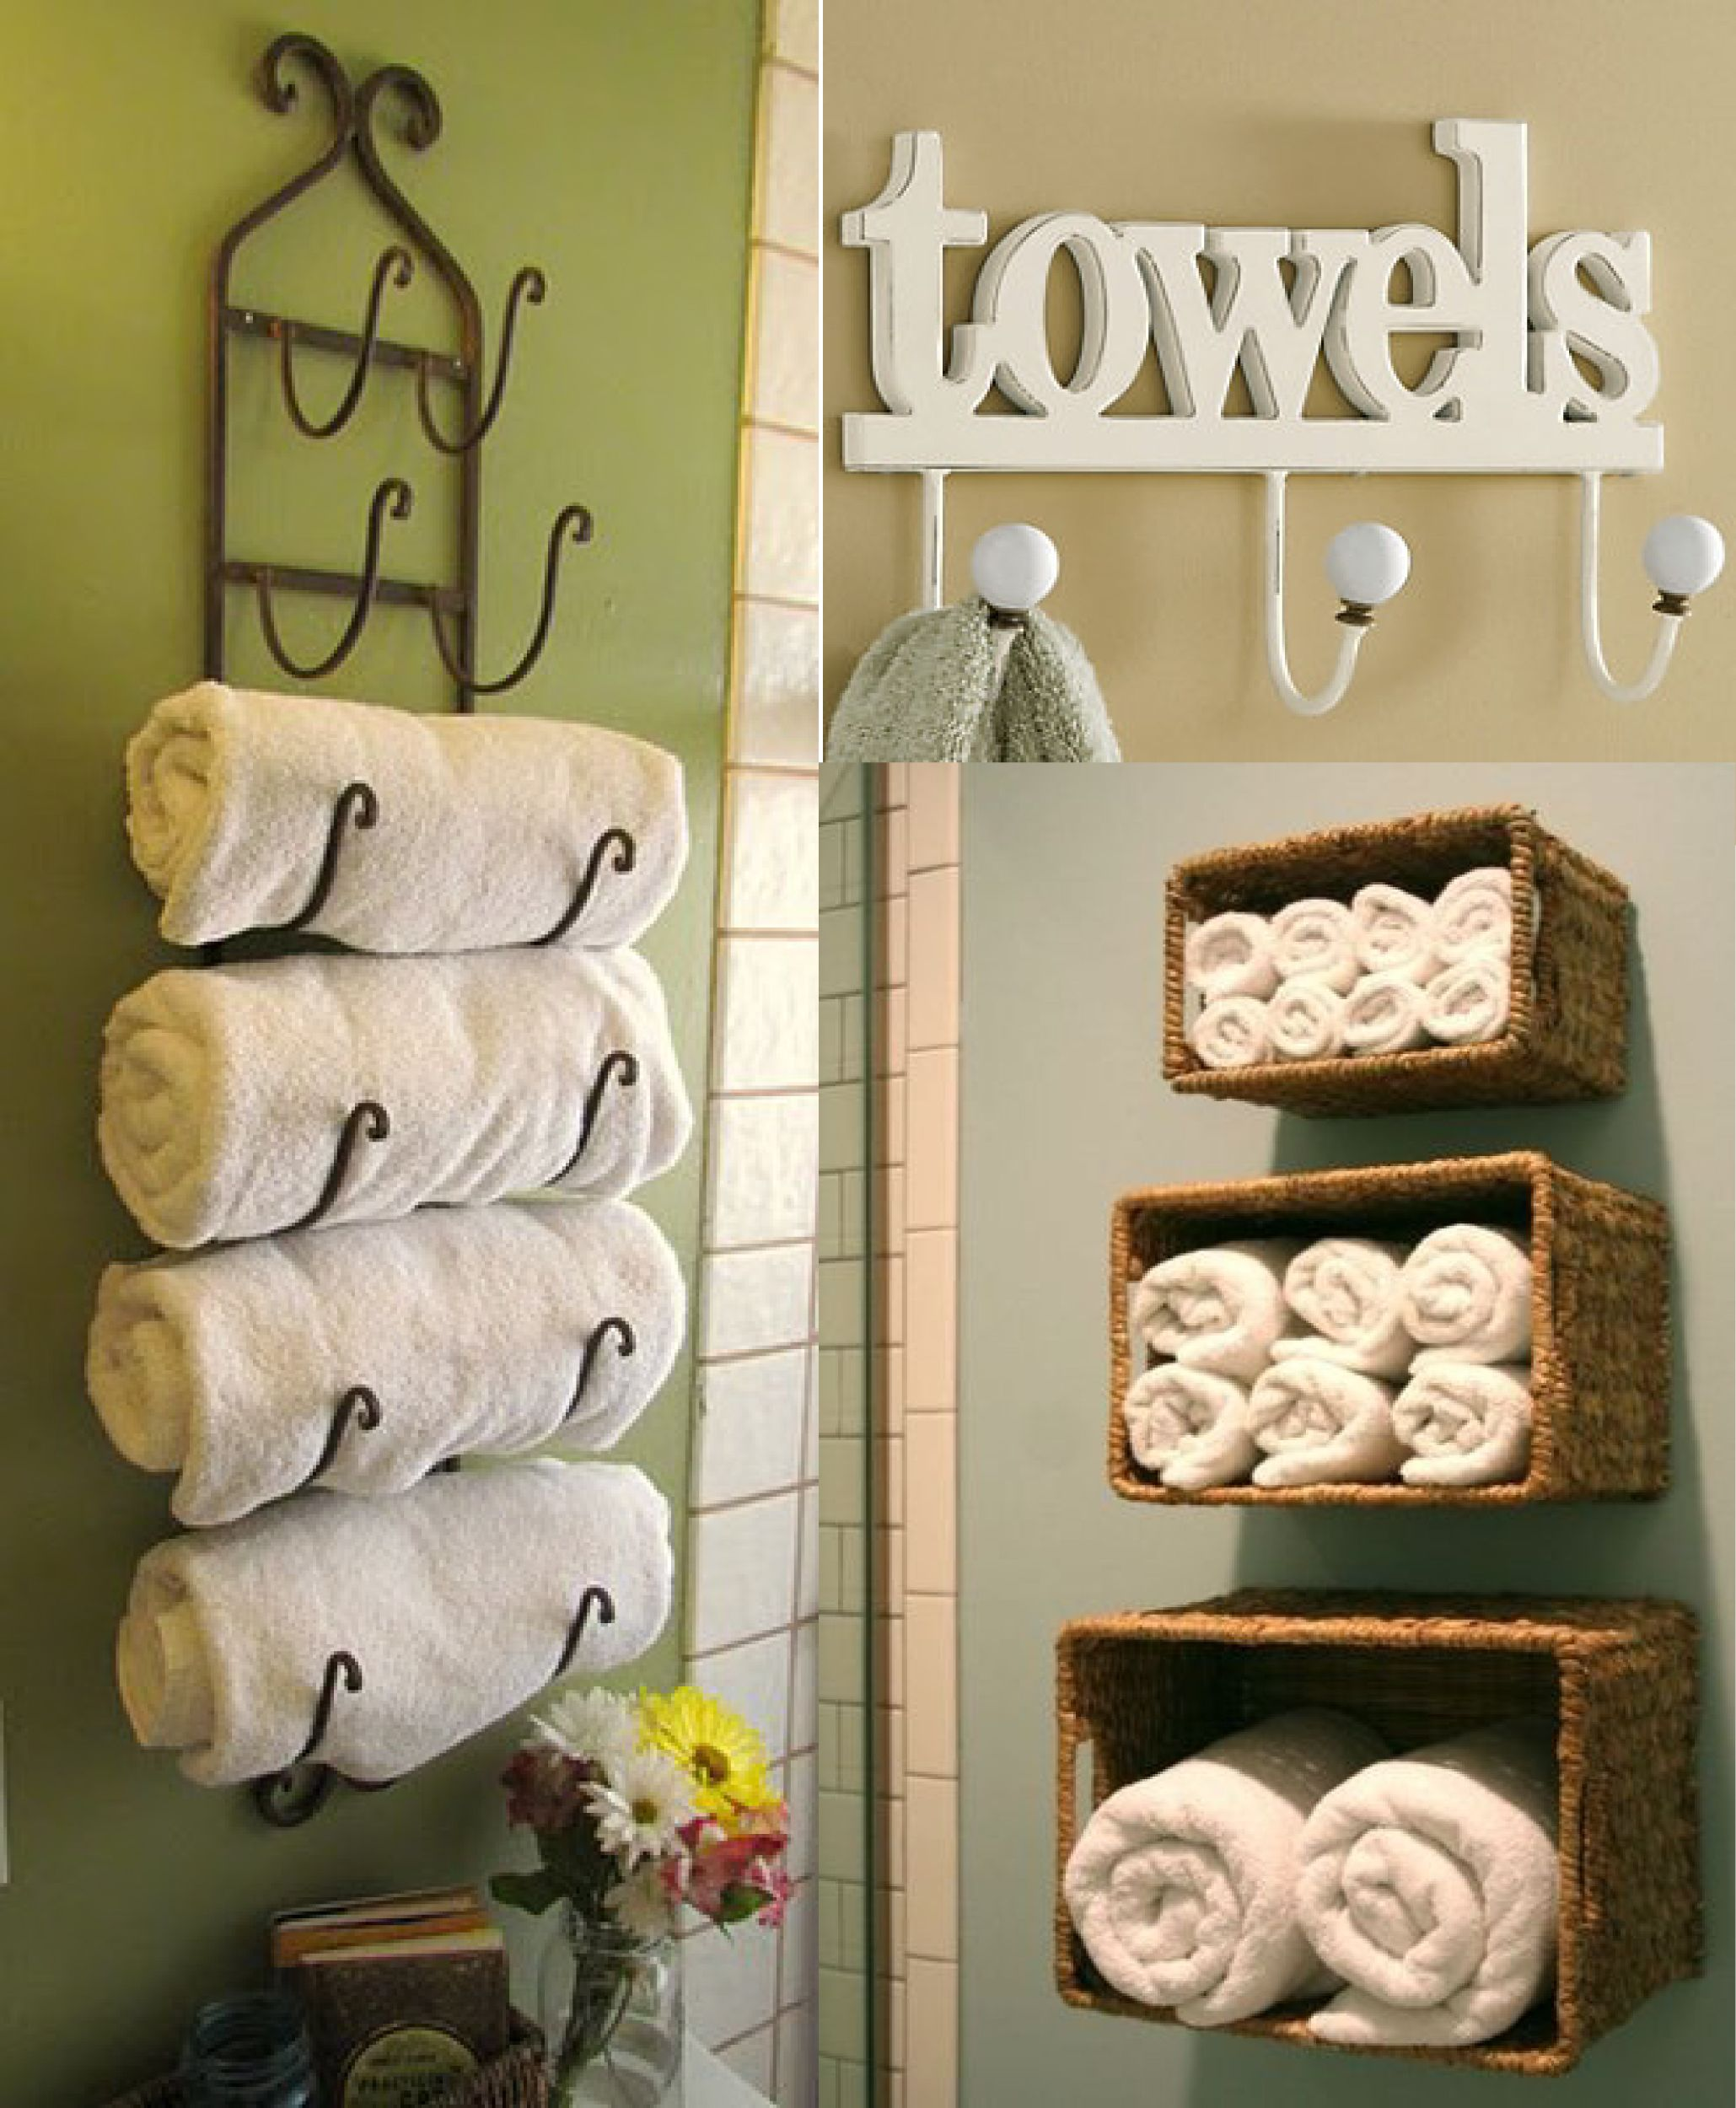 Ordinaire Bathroom Interior Awesome Three Rattan Wall Basket Towel Storage And  Antique Custom Towel Bar Inspiring Bathroom Accesories Design Ideas Fancy  Towel Storage ...